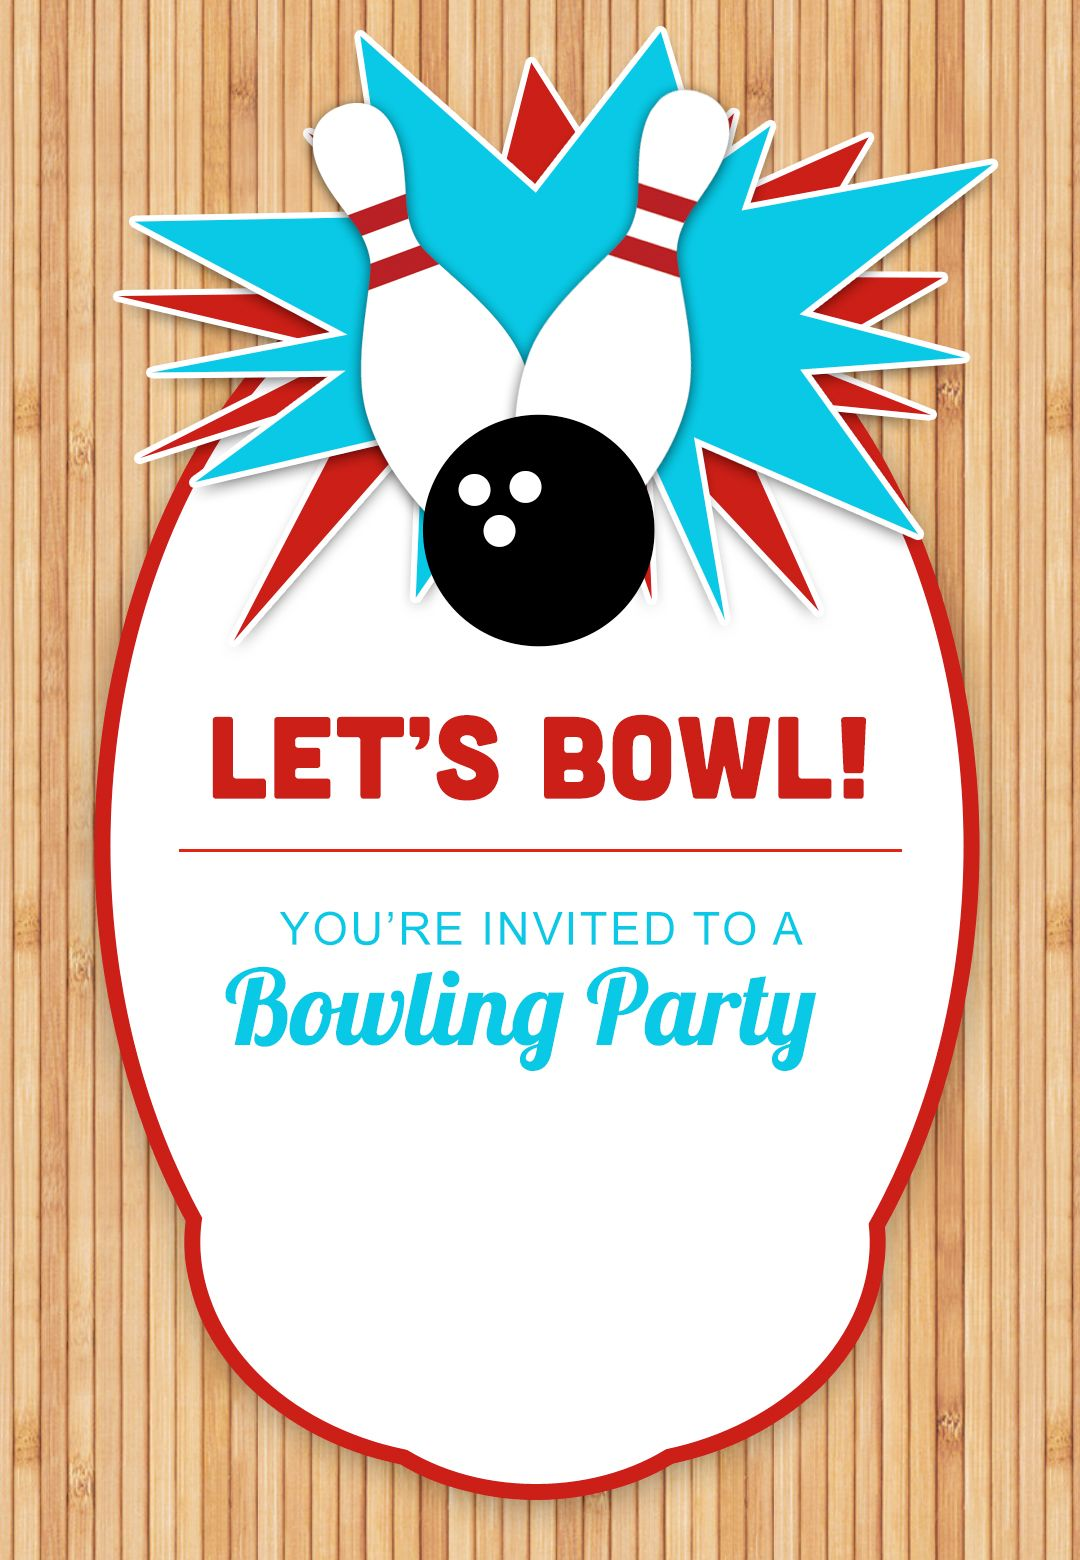 Bowling Birthday Party Invitation Templates Ukrandiffusion